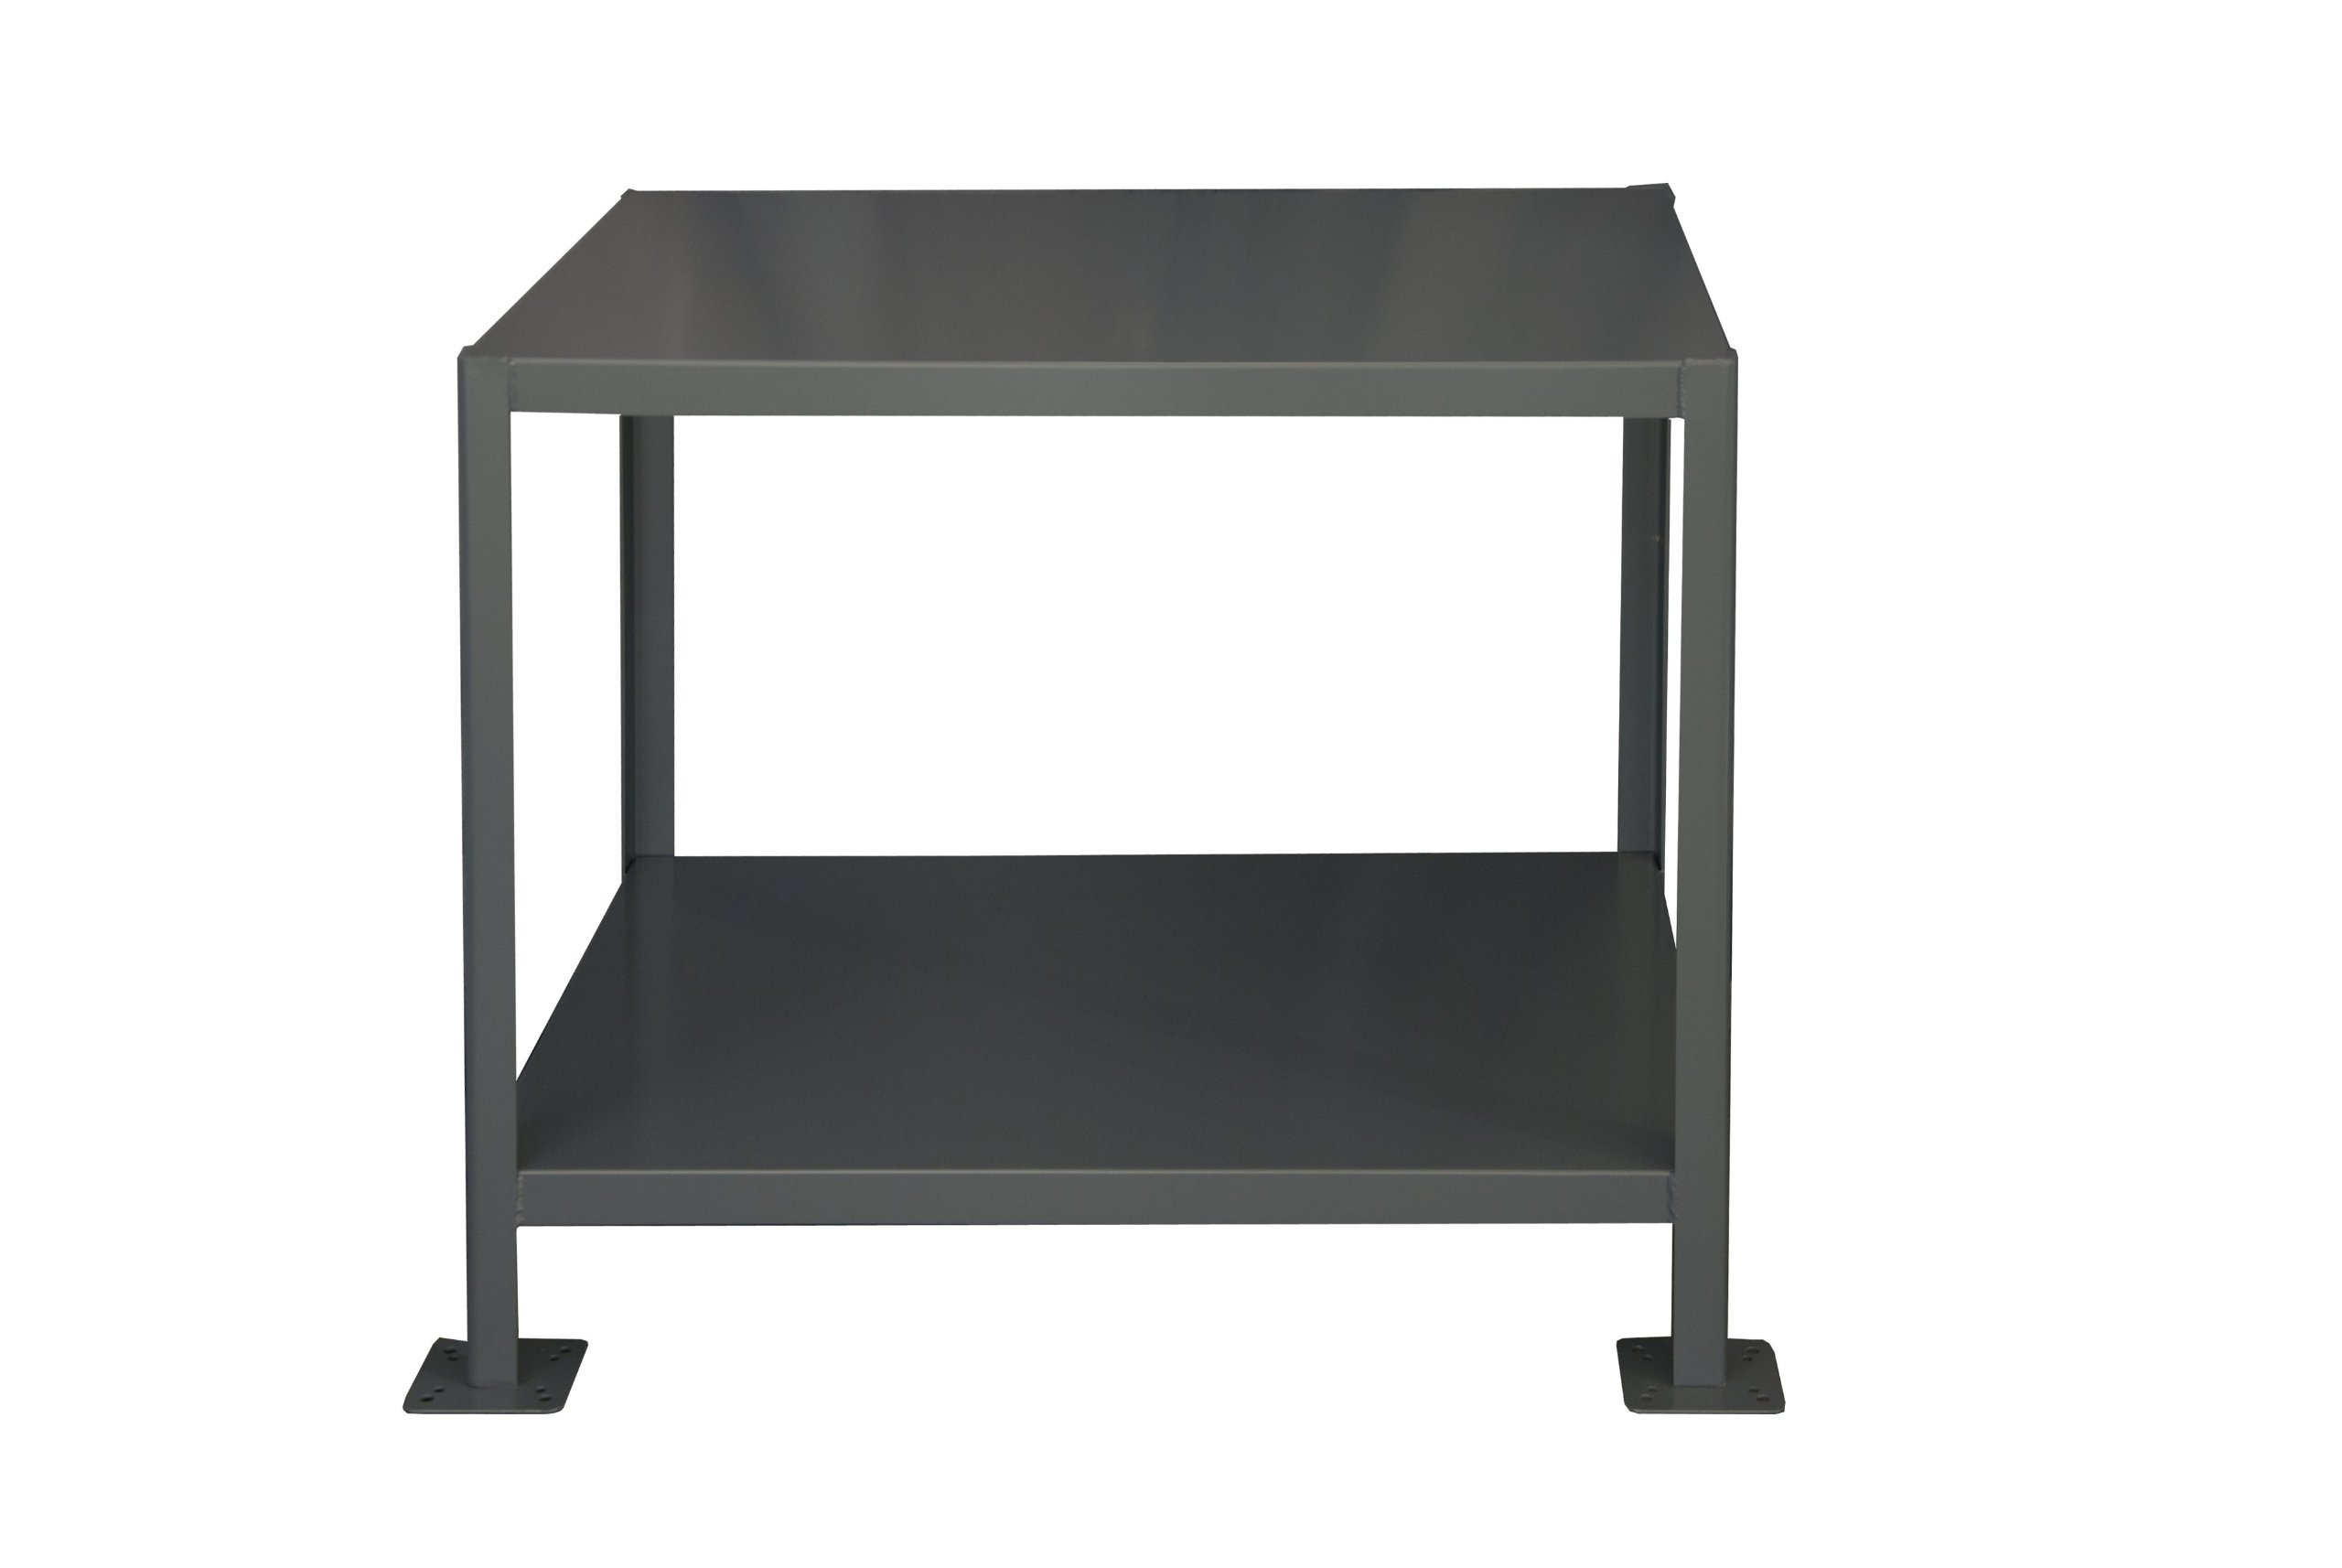 Durham Steel Medium Duty Machine Table, MT243630-2K295,  2 Shelves,  2000 lbs Capacity,  36'' Length x 24'' Width x 30'' Height by Durham